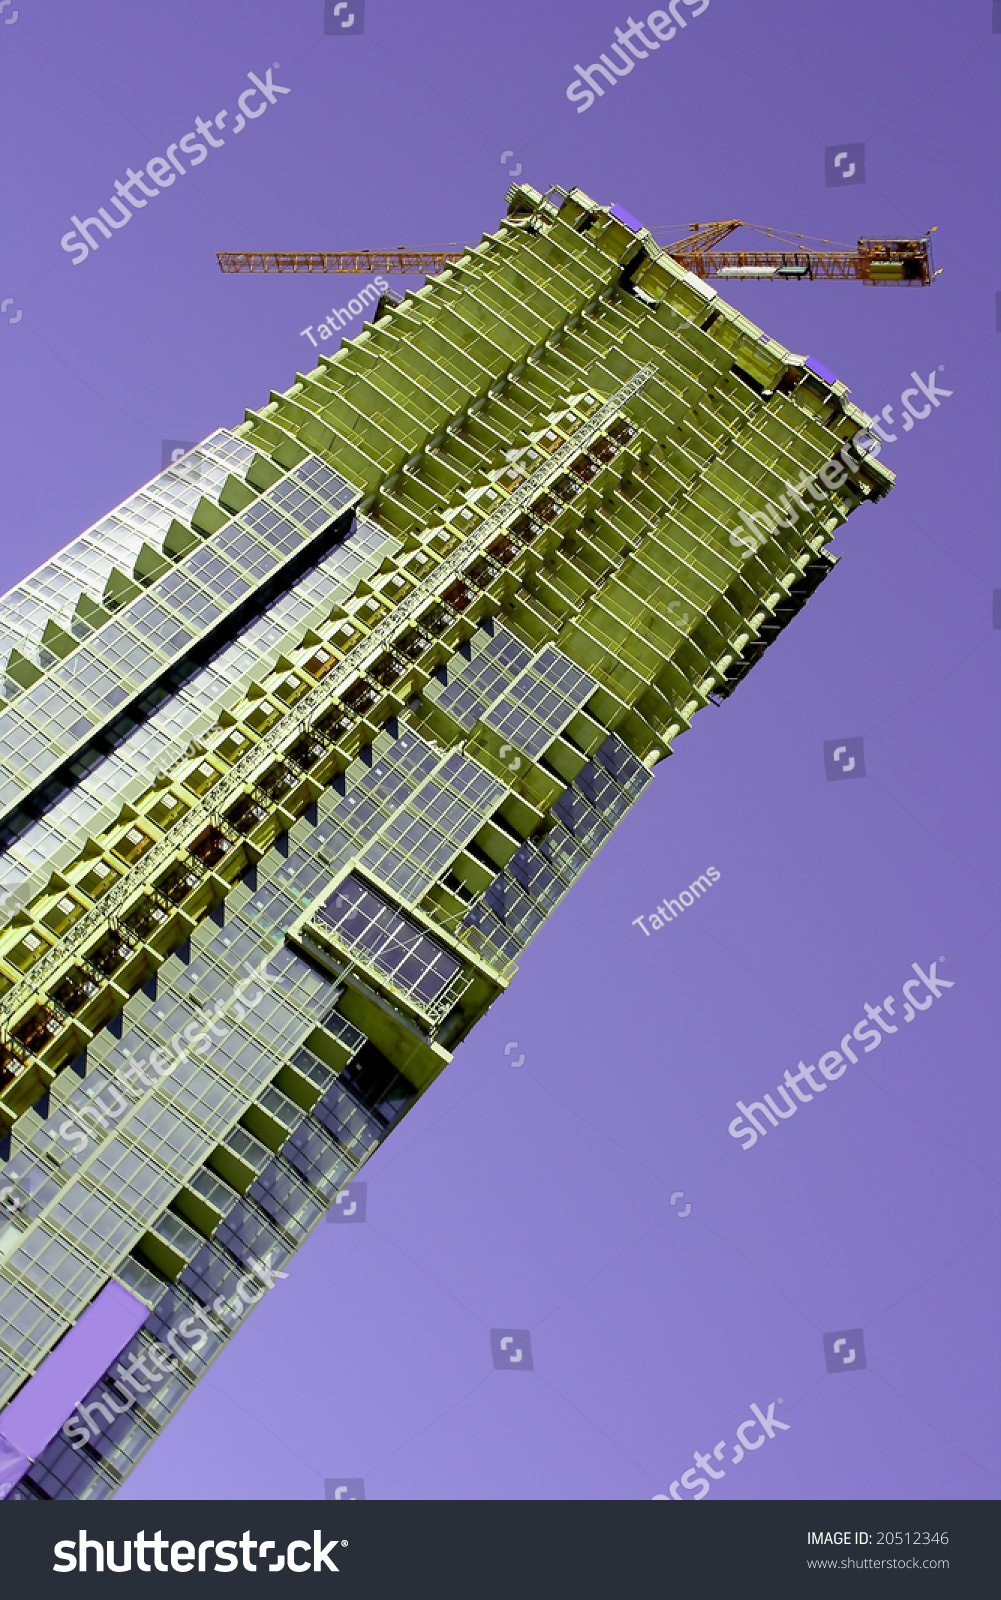 stock-photo-green-building-against-viole